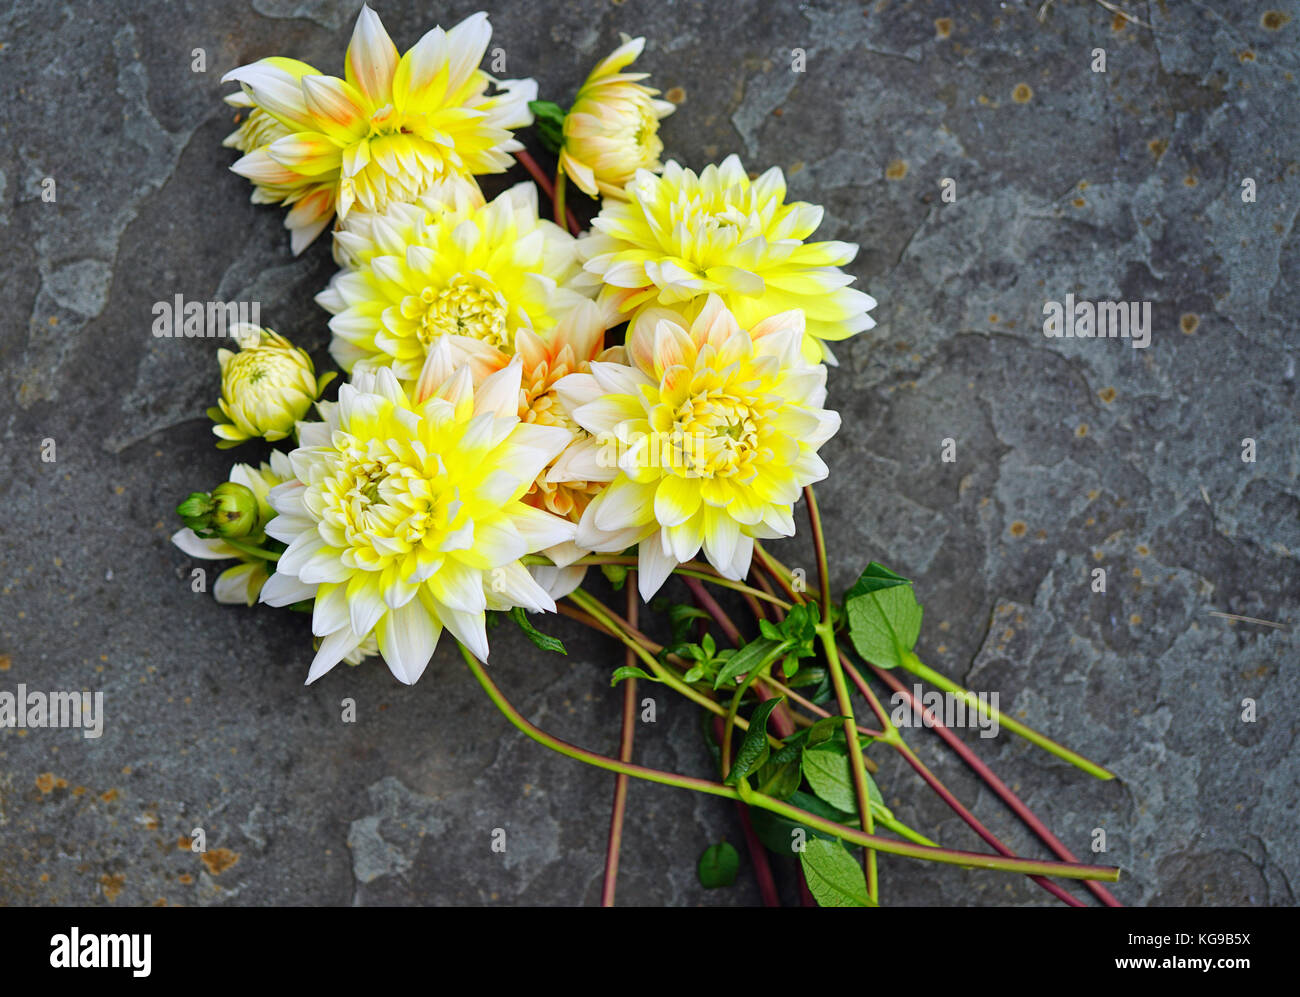 Stems Of Freshly Picked Yellow And White Dahlia Flowers In The Fall